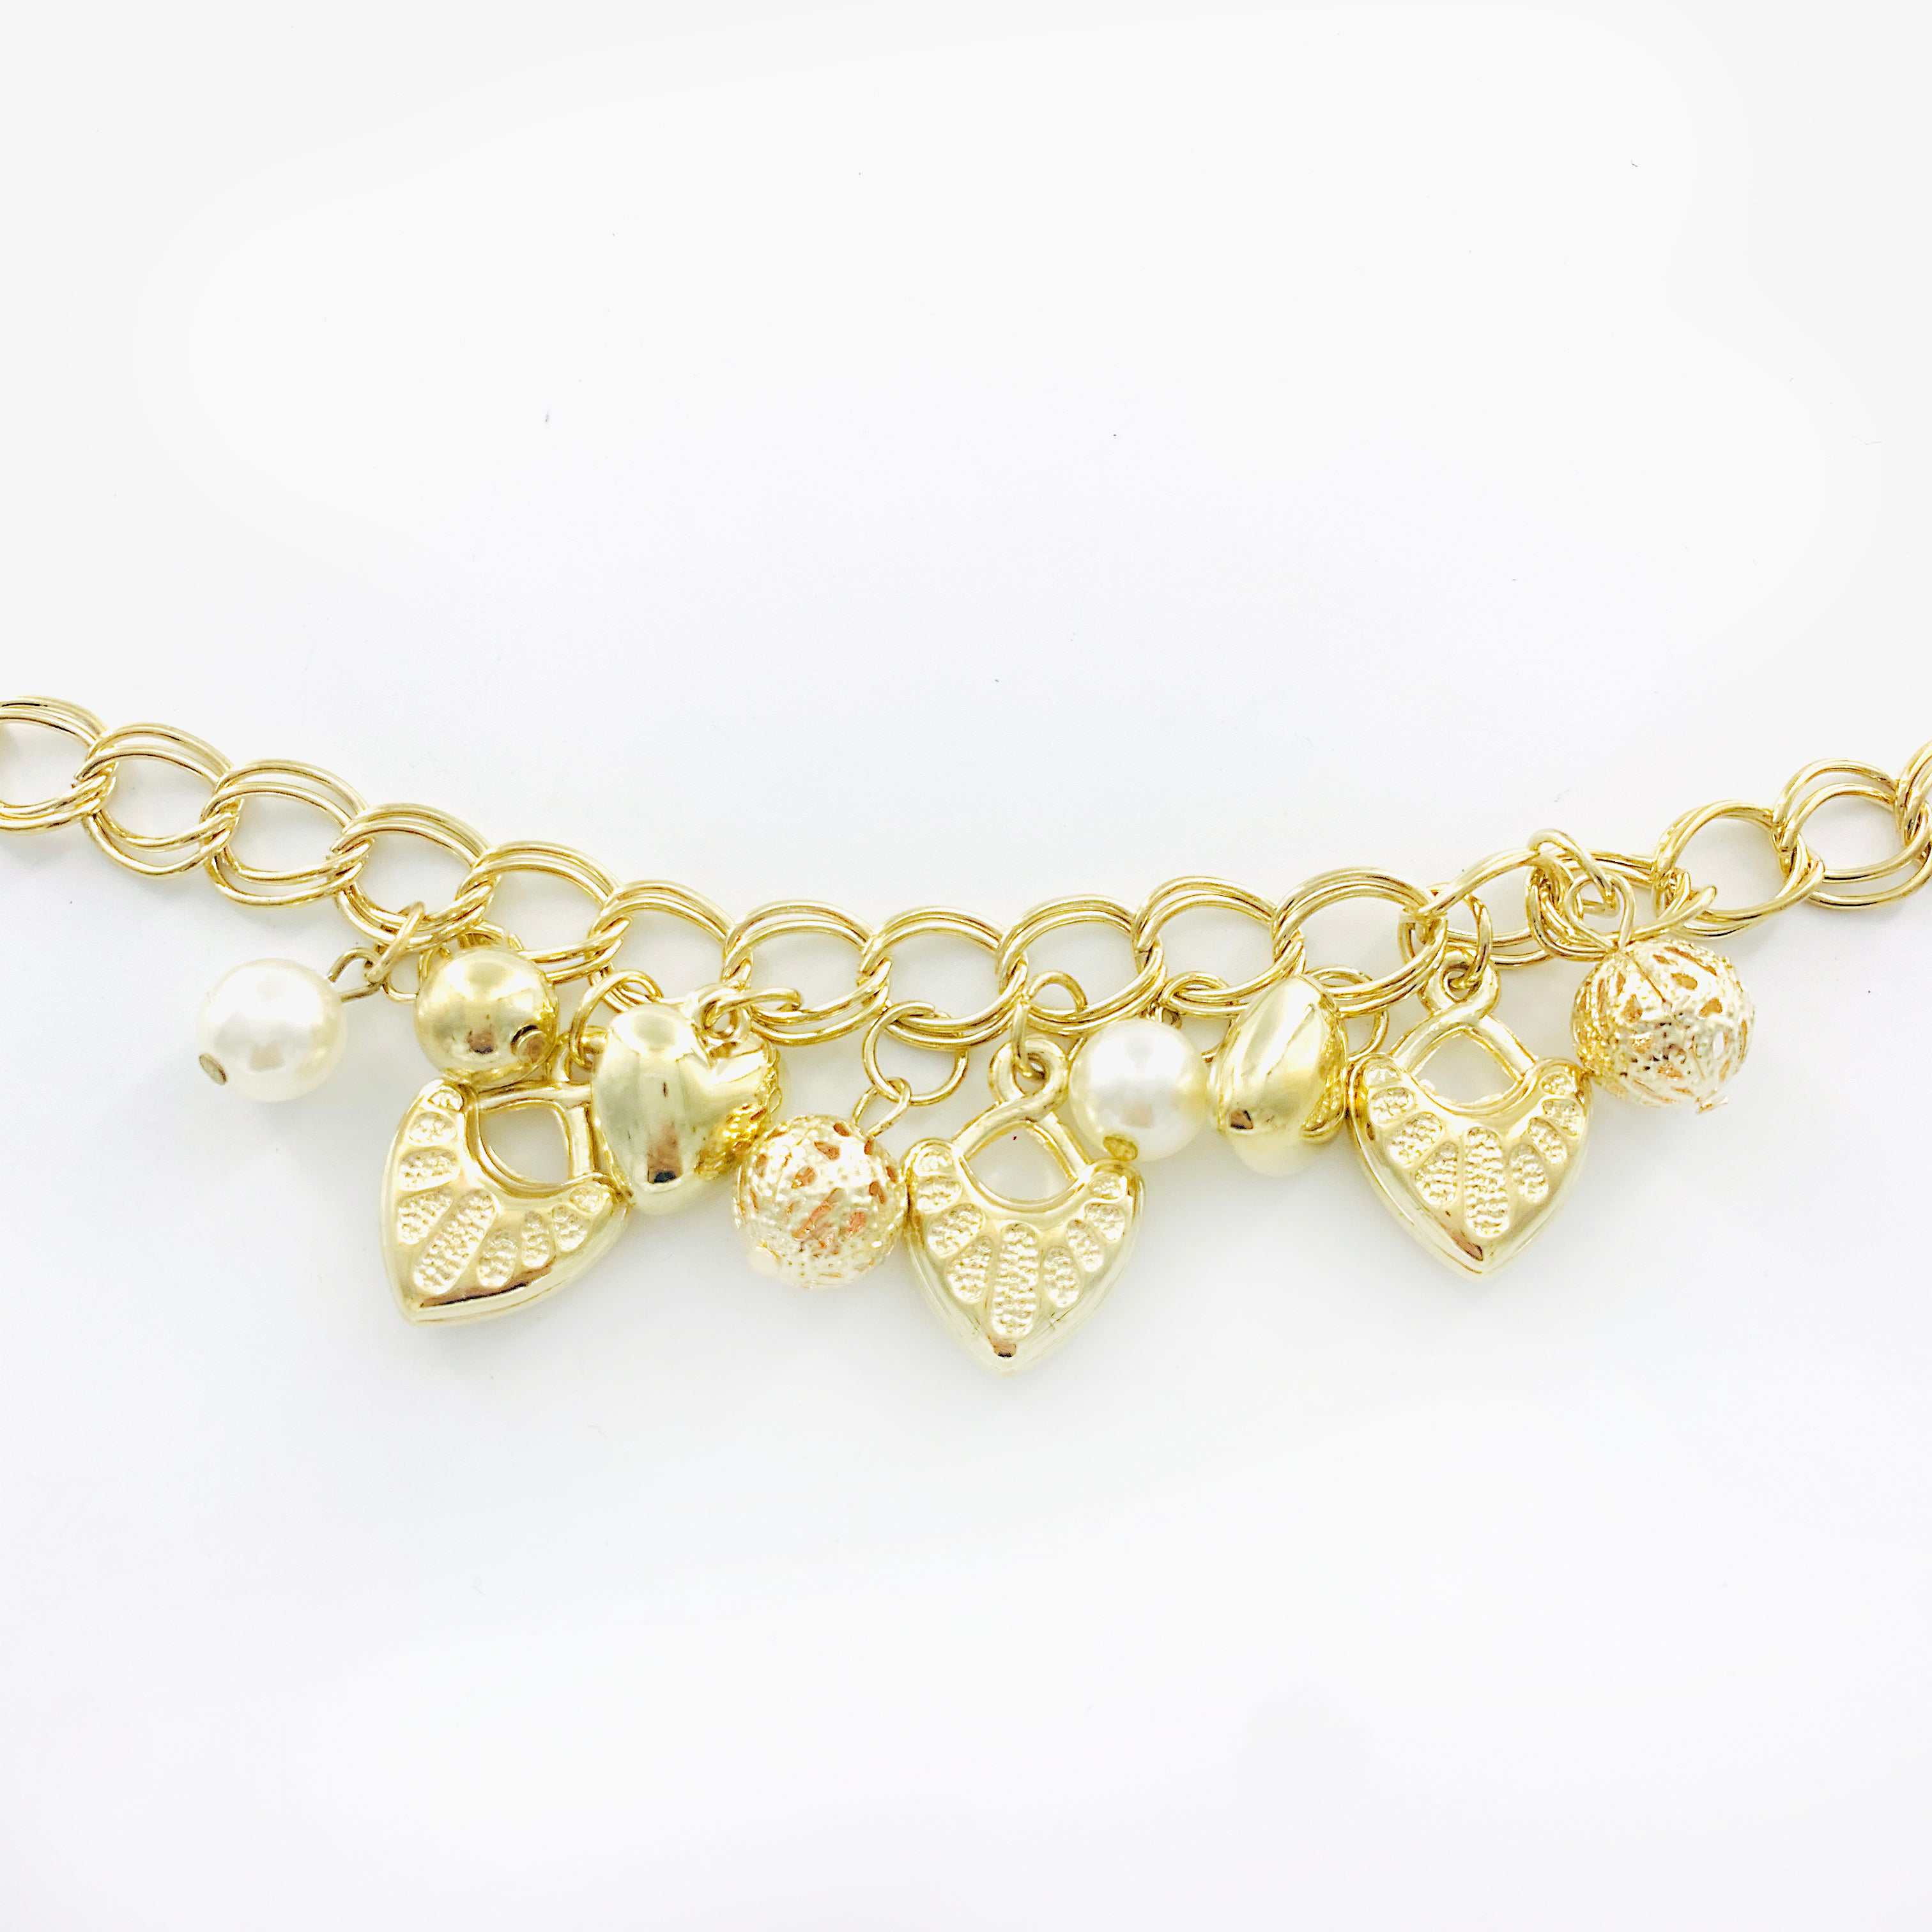 Gold chunky chain with heart Charms and pearls